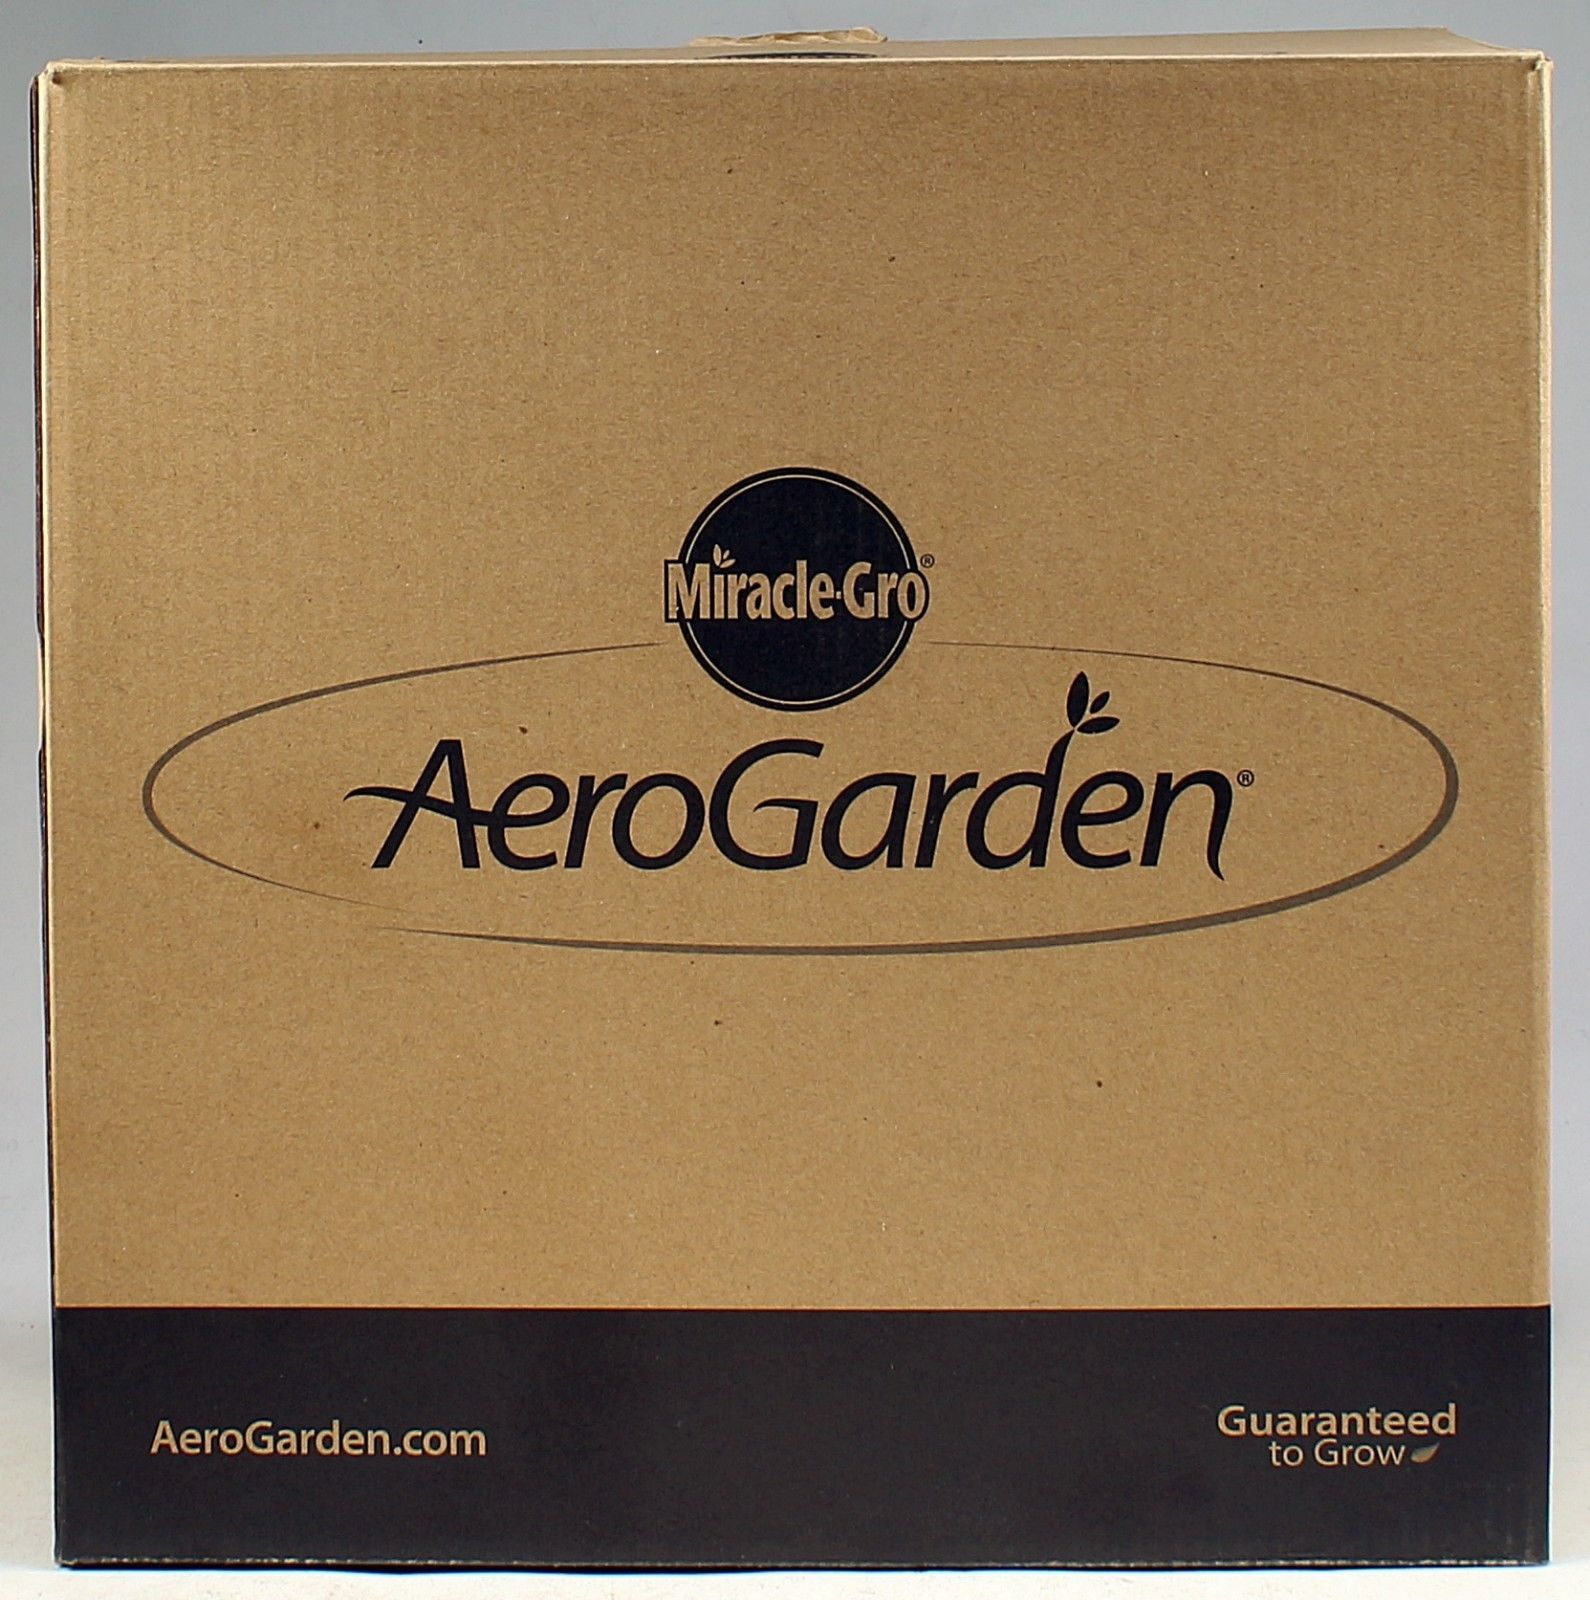 Miracle-Gro AeroGarden Sprout Plus LED and 29 similar items